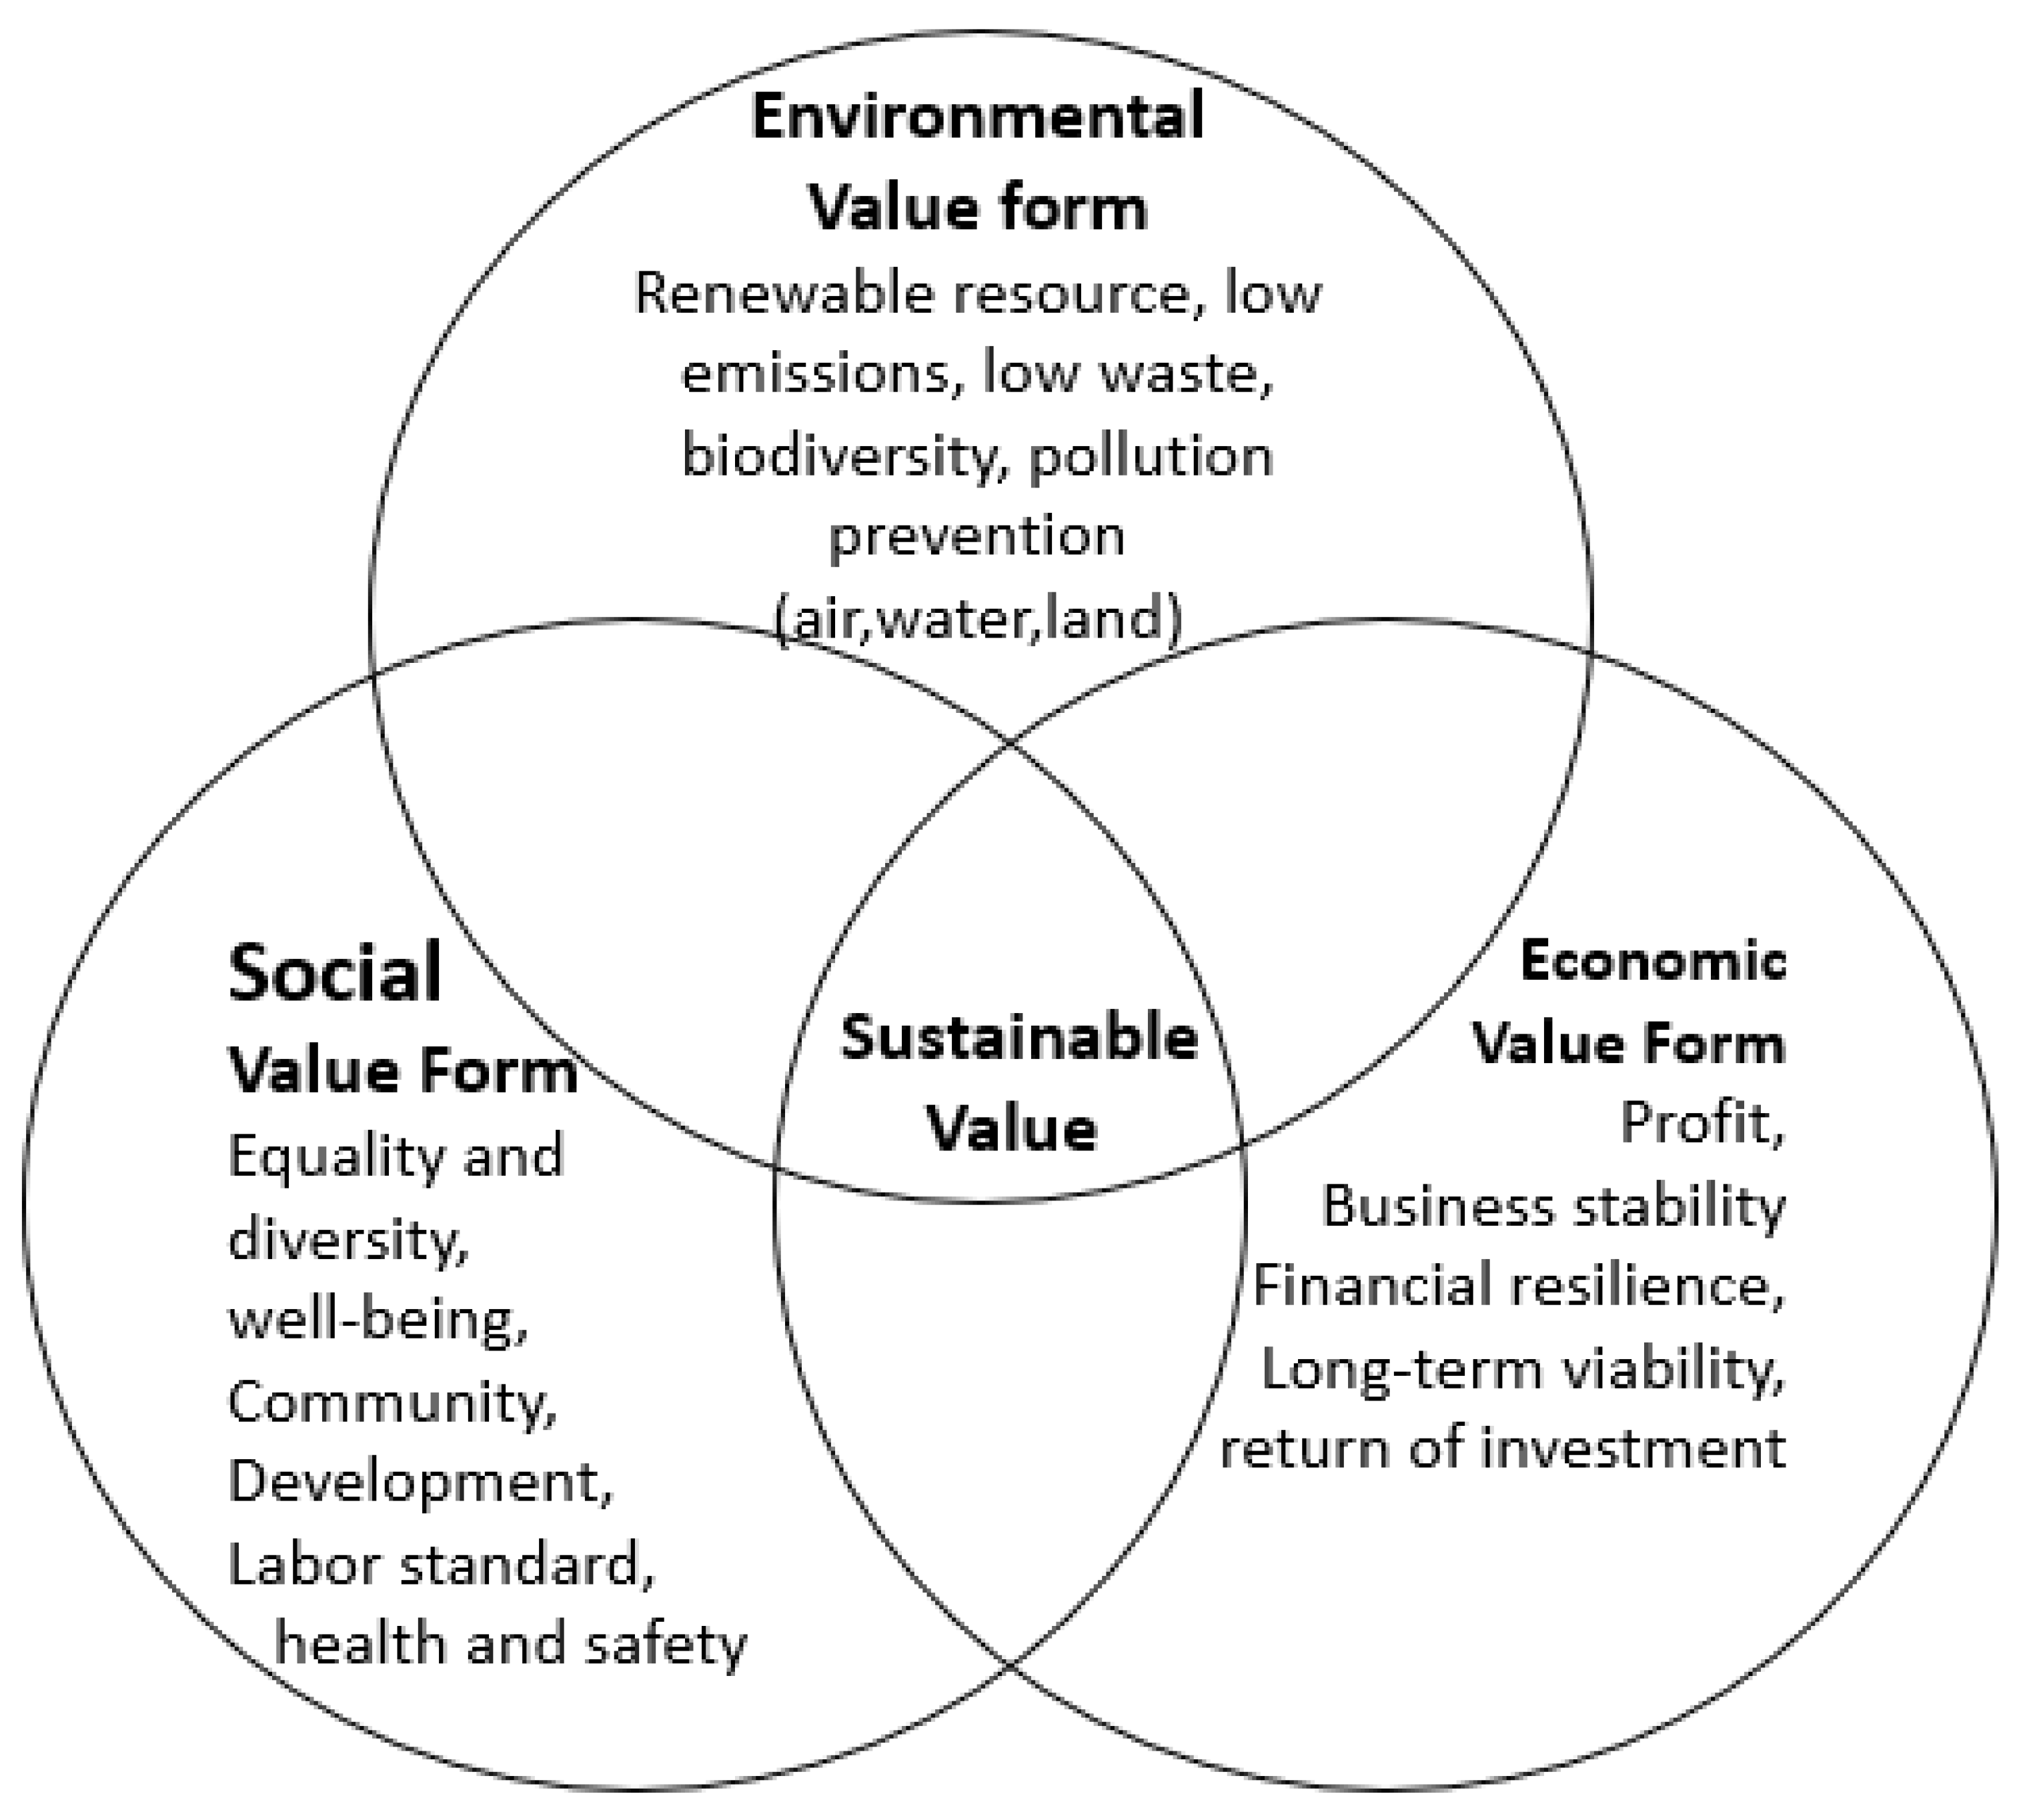 Sustainability of business a form of